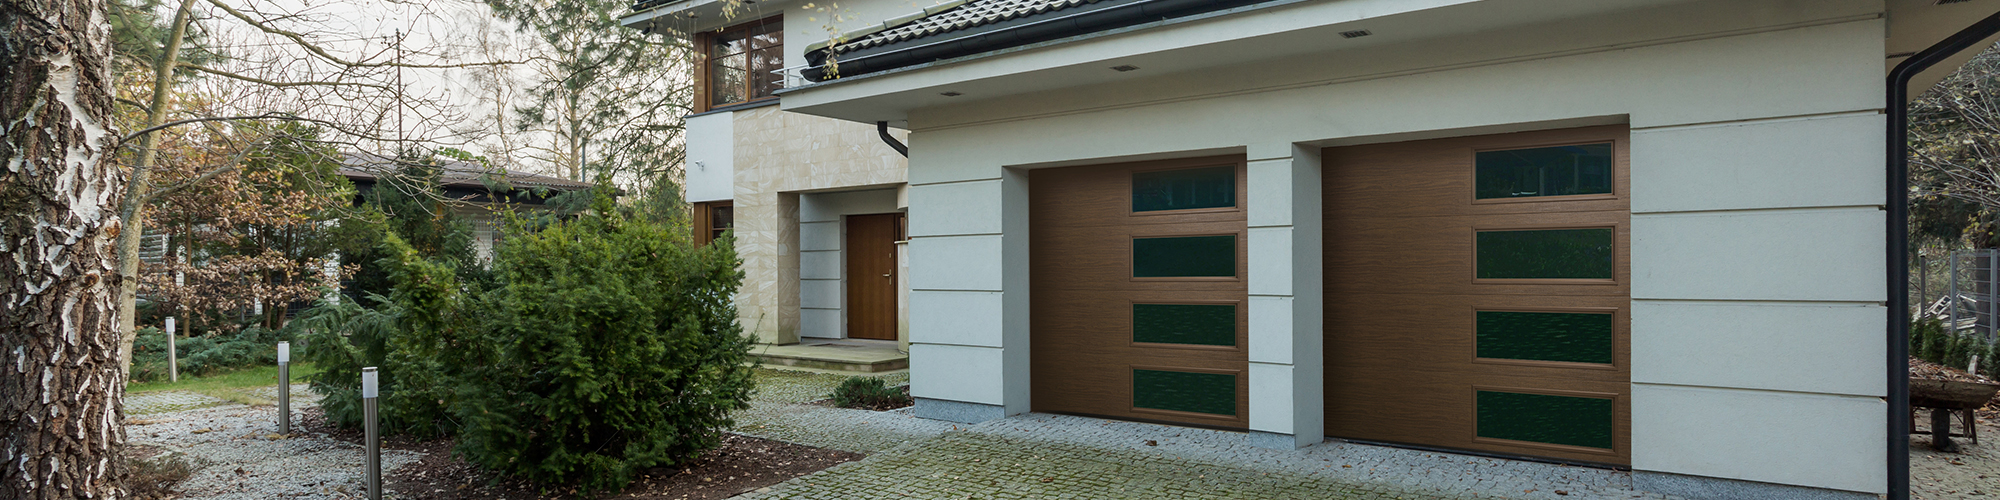 Residential Property With a Garage